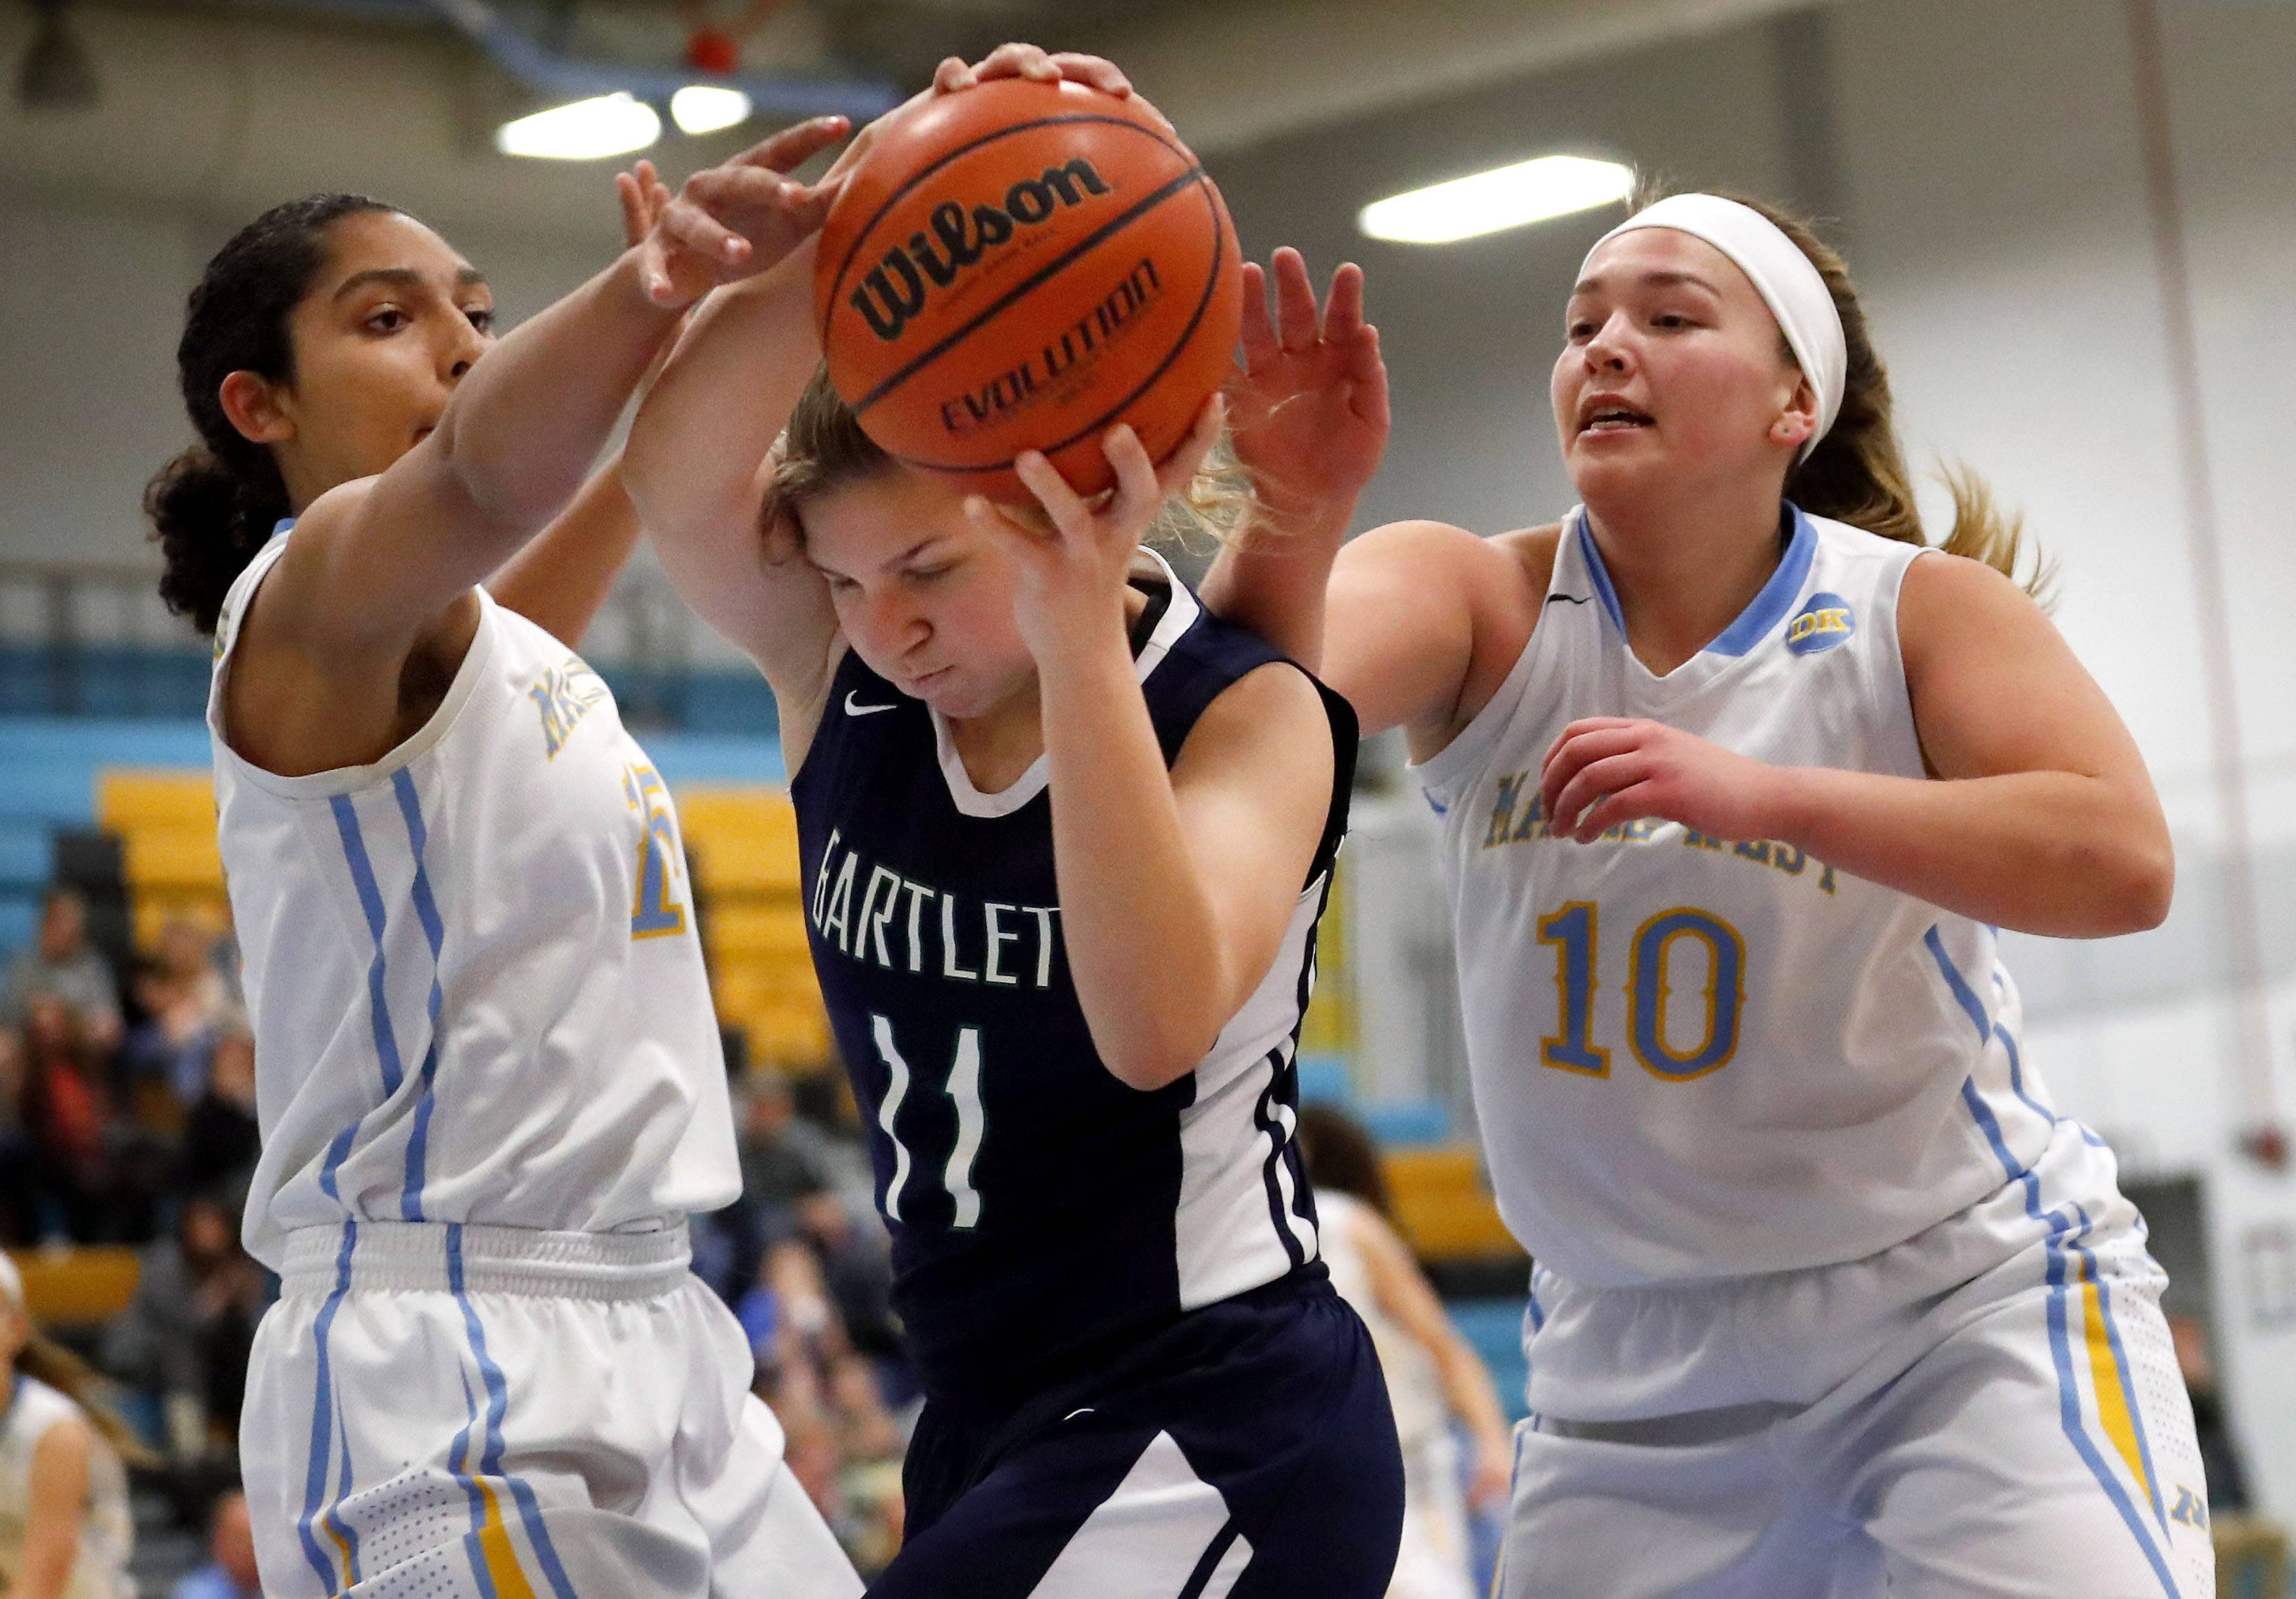 Maine West's Rachel Kent, left, and Allison Pearson (10) defend against Bartlett's Alexis Sinclair on Monday night in Des Plaines.